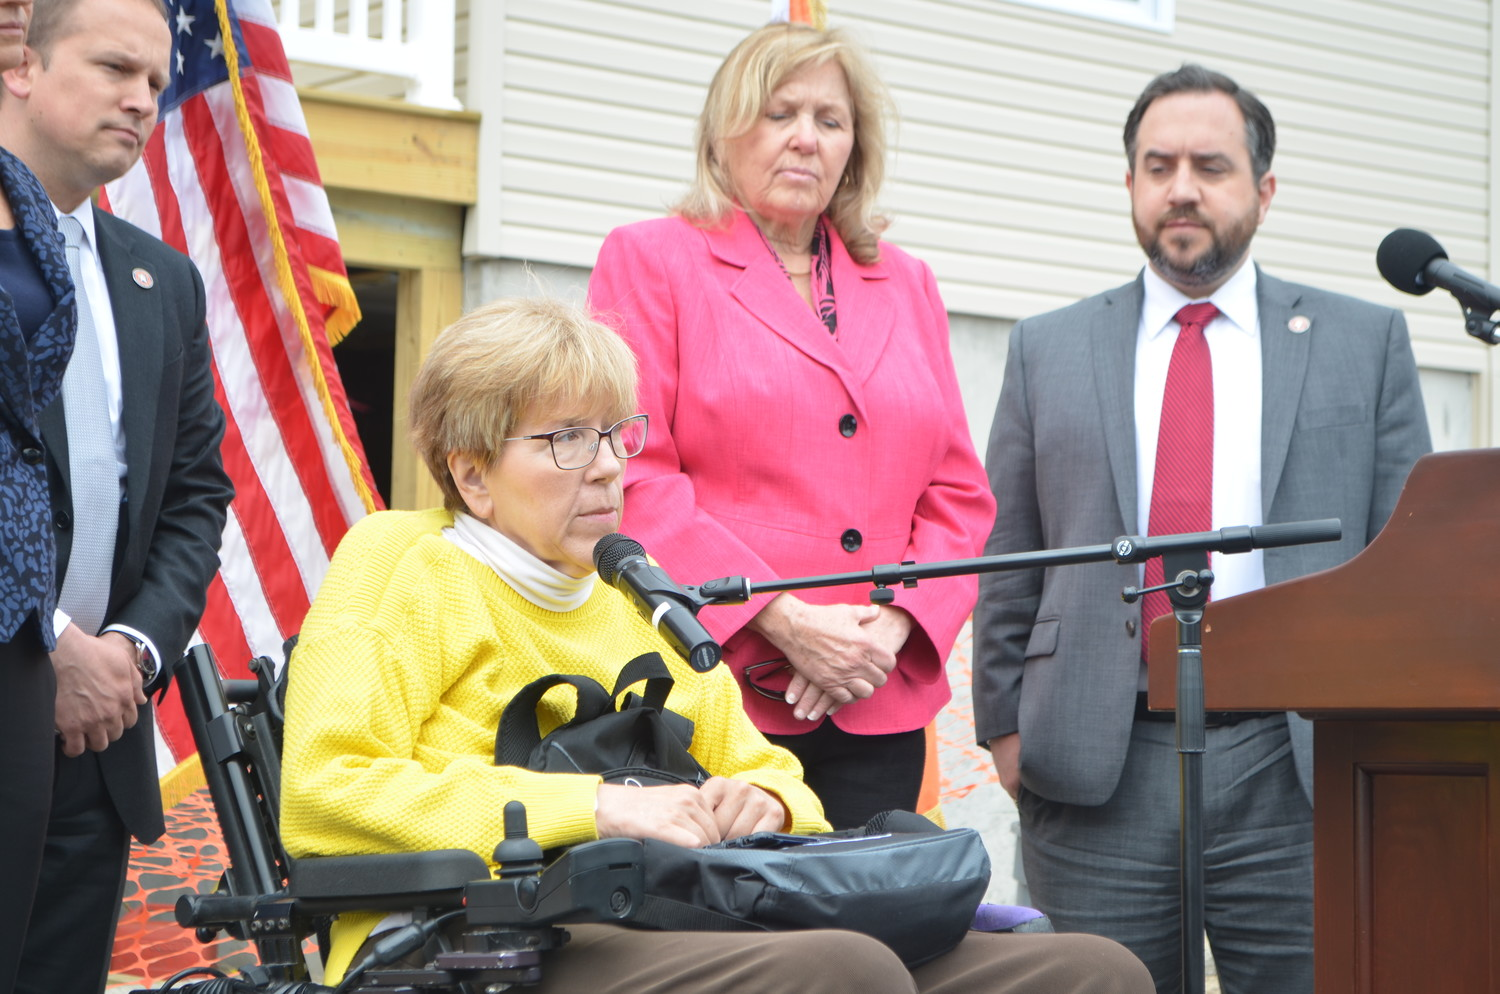 West End resident Liz Treston was joined on Monday by Nassau County officials outside her Hurricane Sandy-damaged home, where she urged victims of contractor fraud to file their cases with the county's Office of Consumer Affairs.